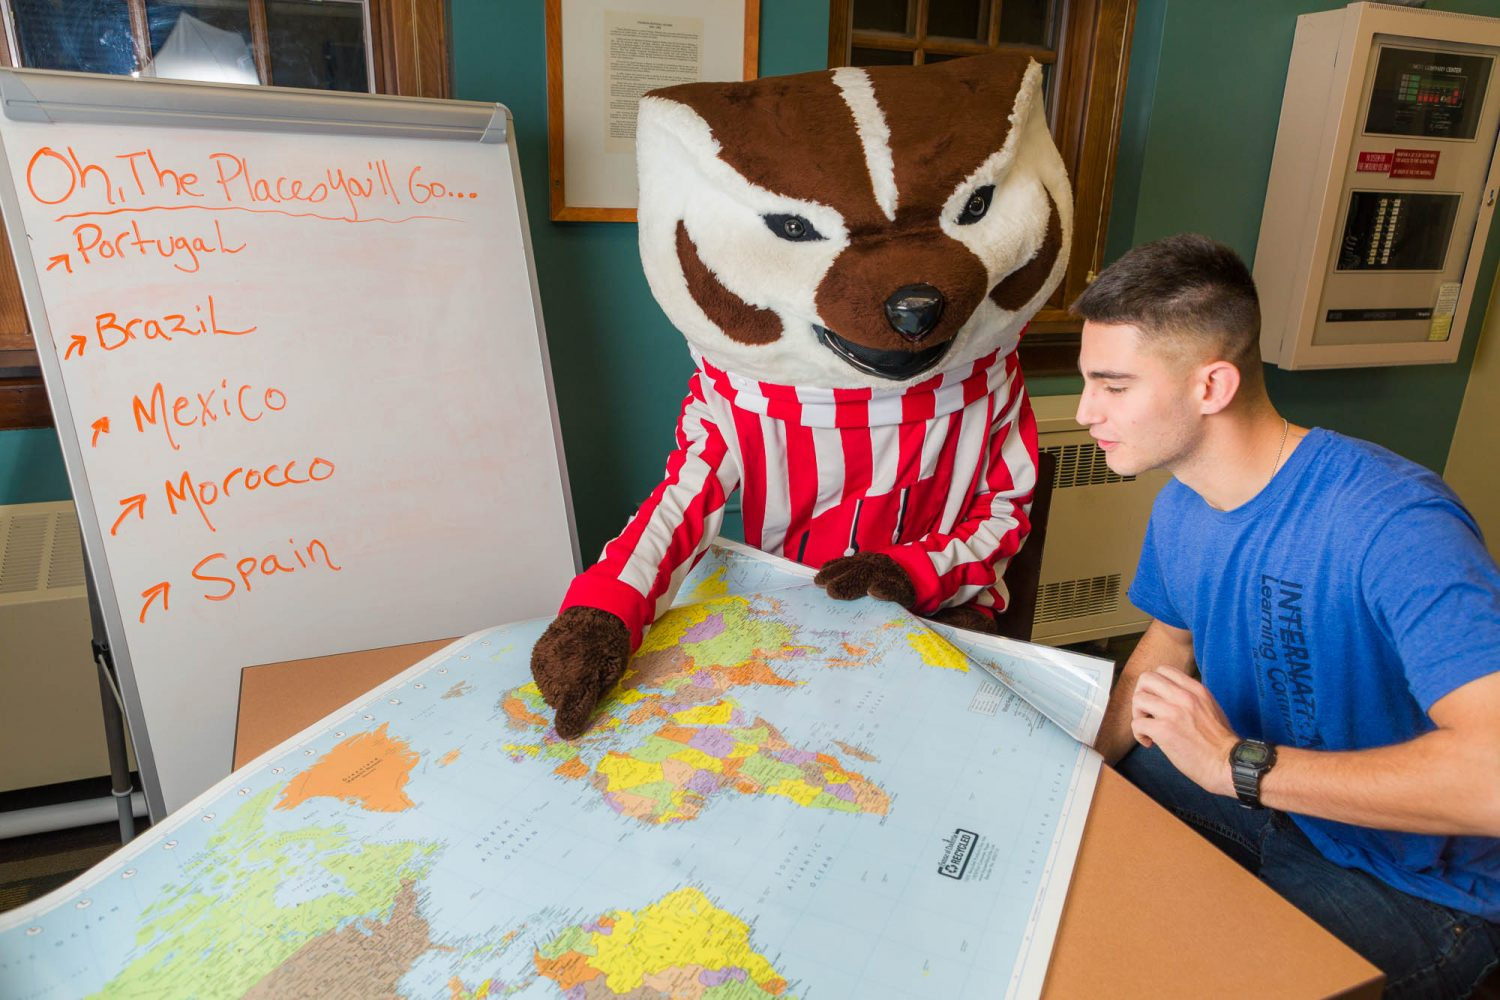 Bucky with a student pointing at a world map